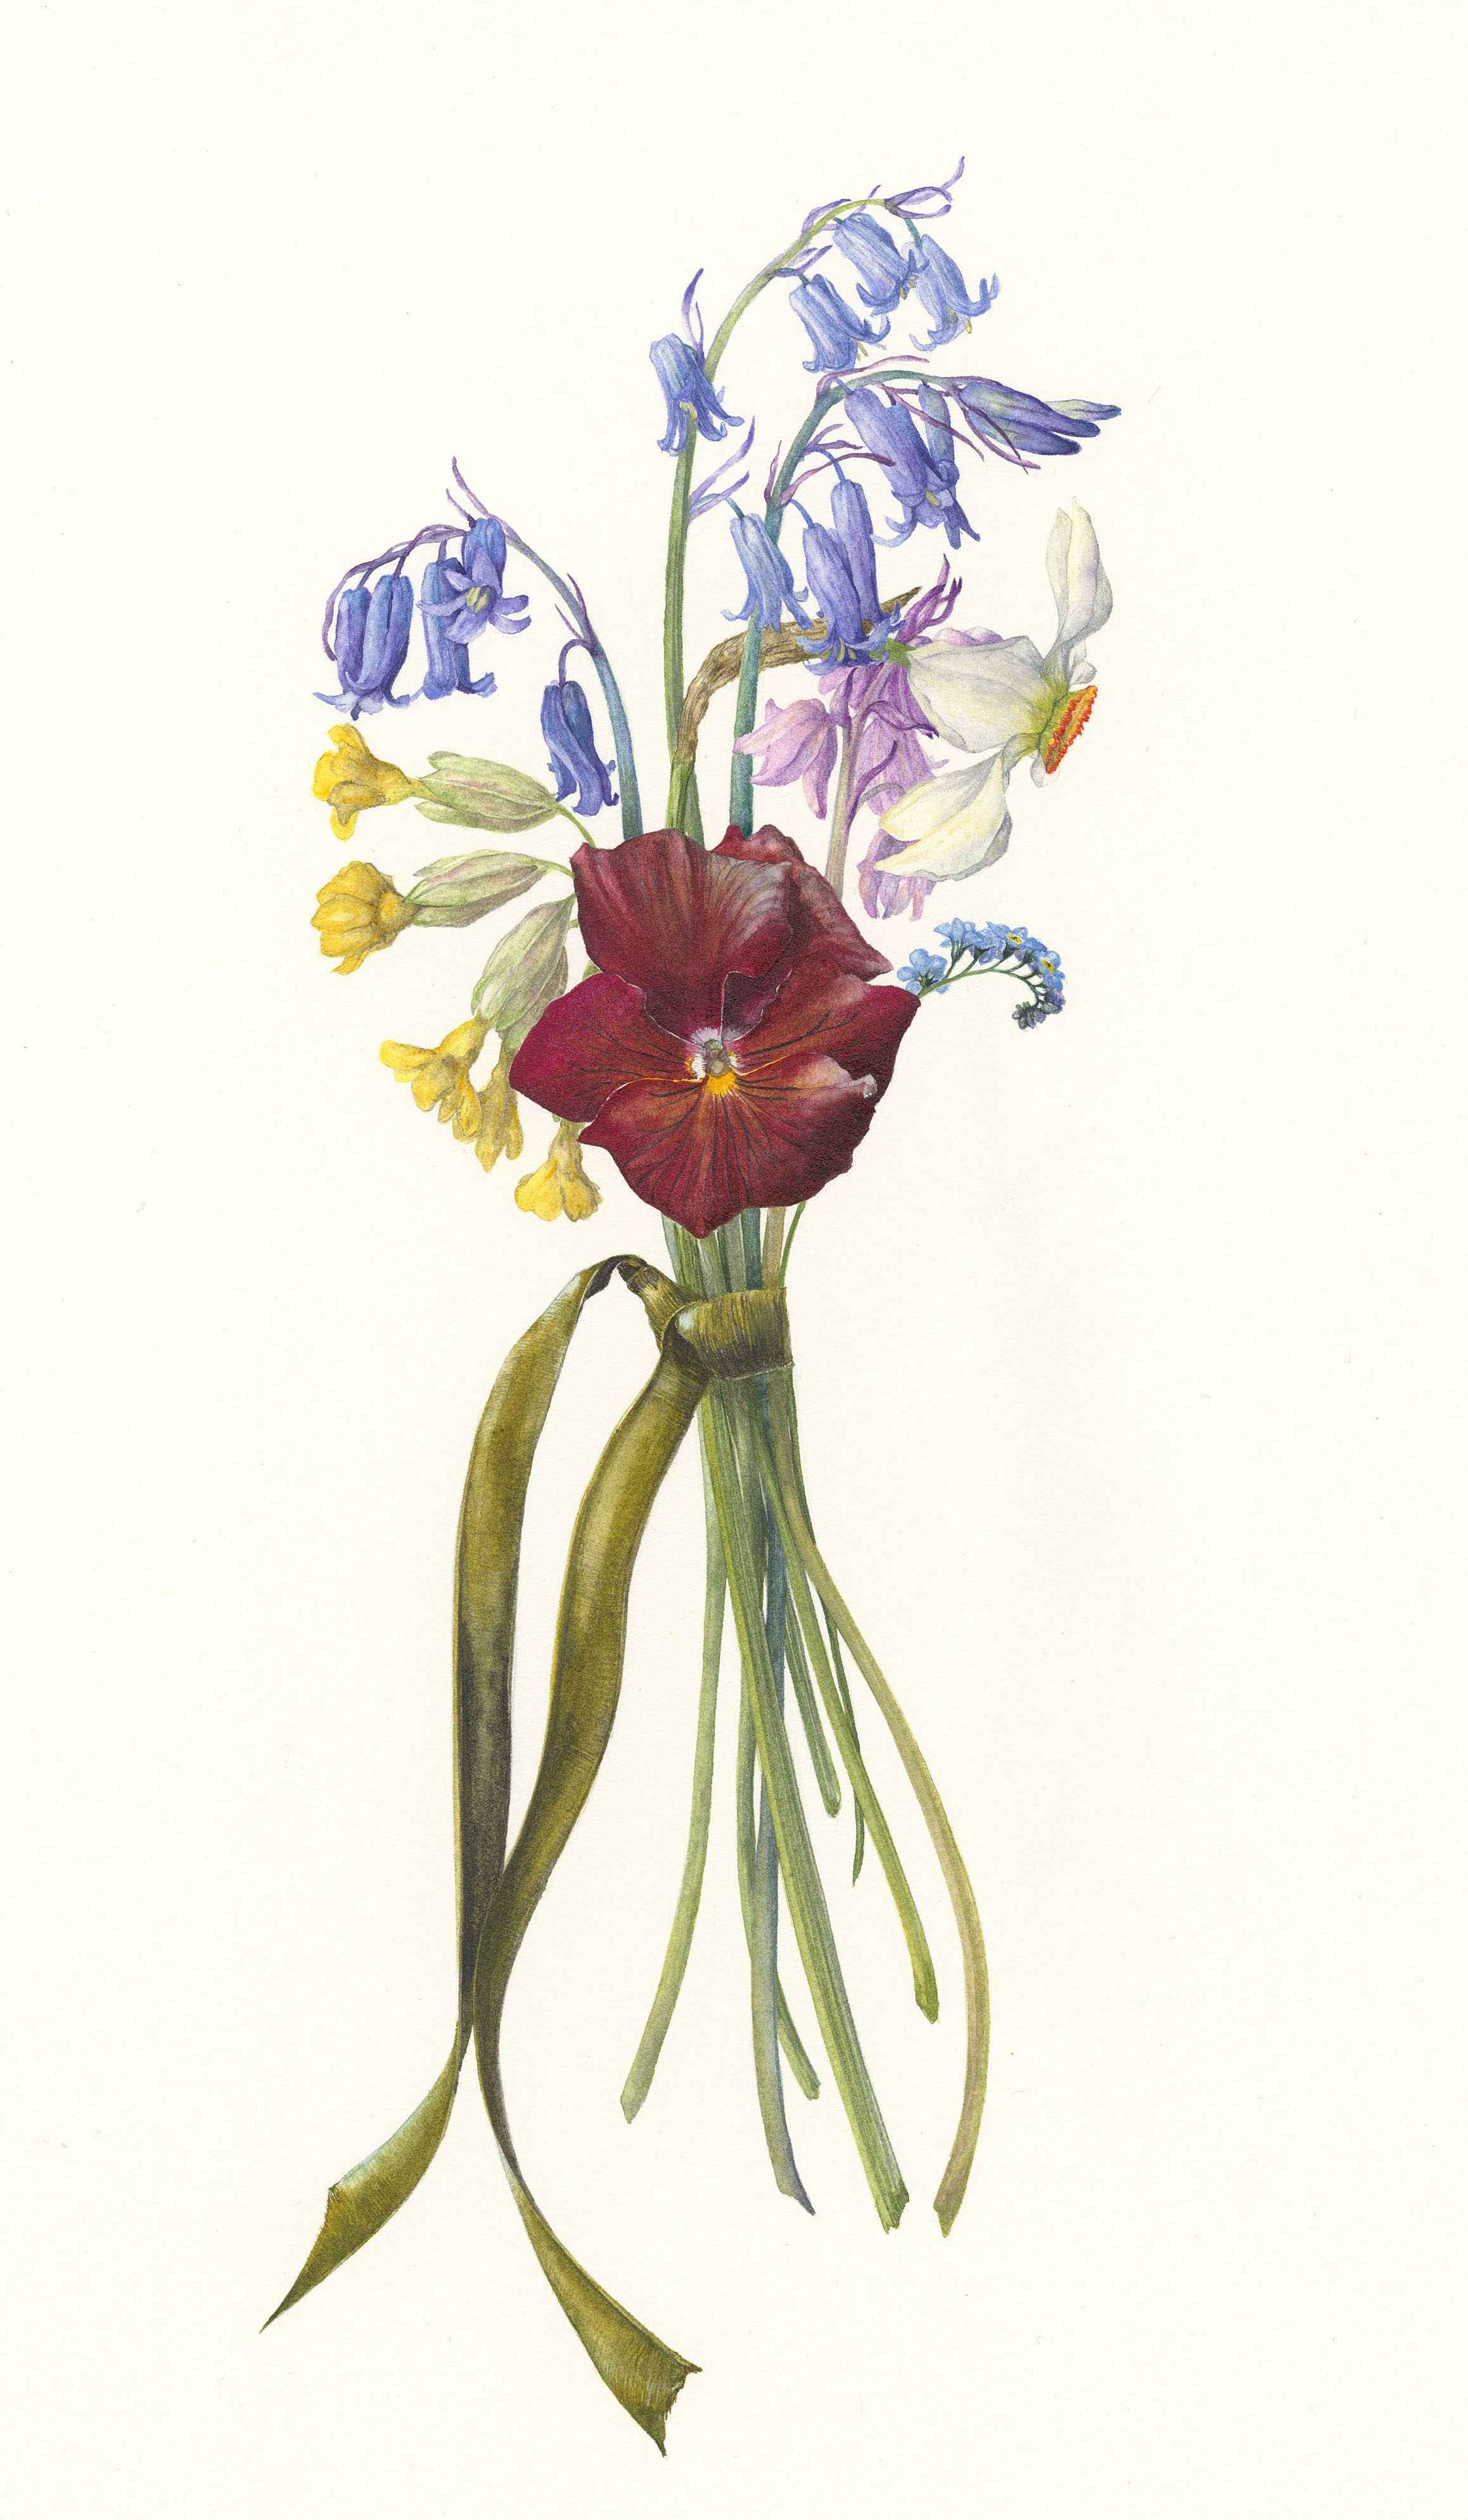 Spring Posy I  watercolour on paper  23 x 35 cm image  36 x 59 cm framed  SOLD